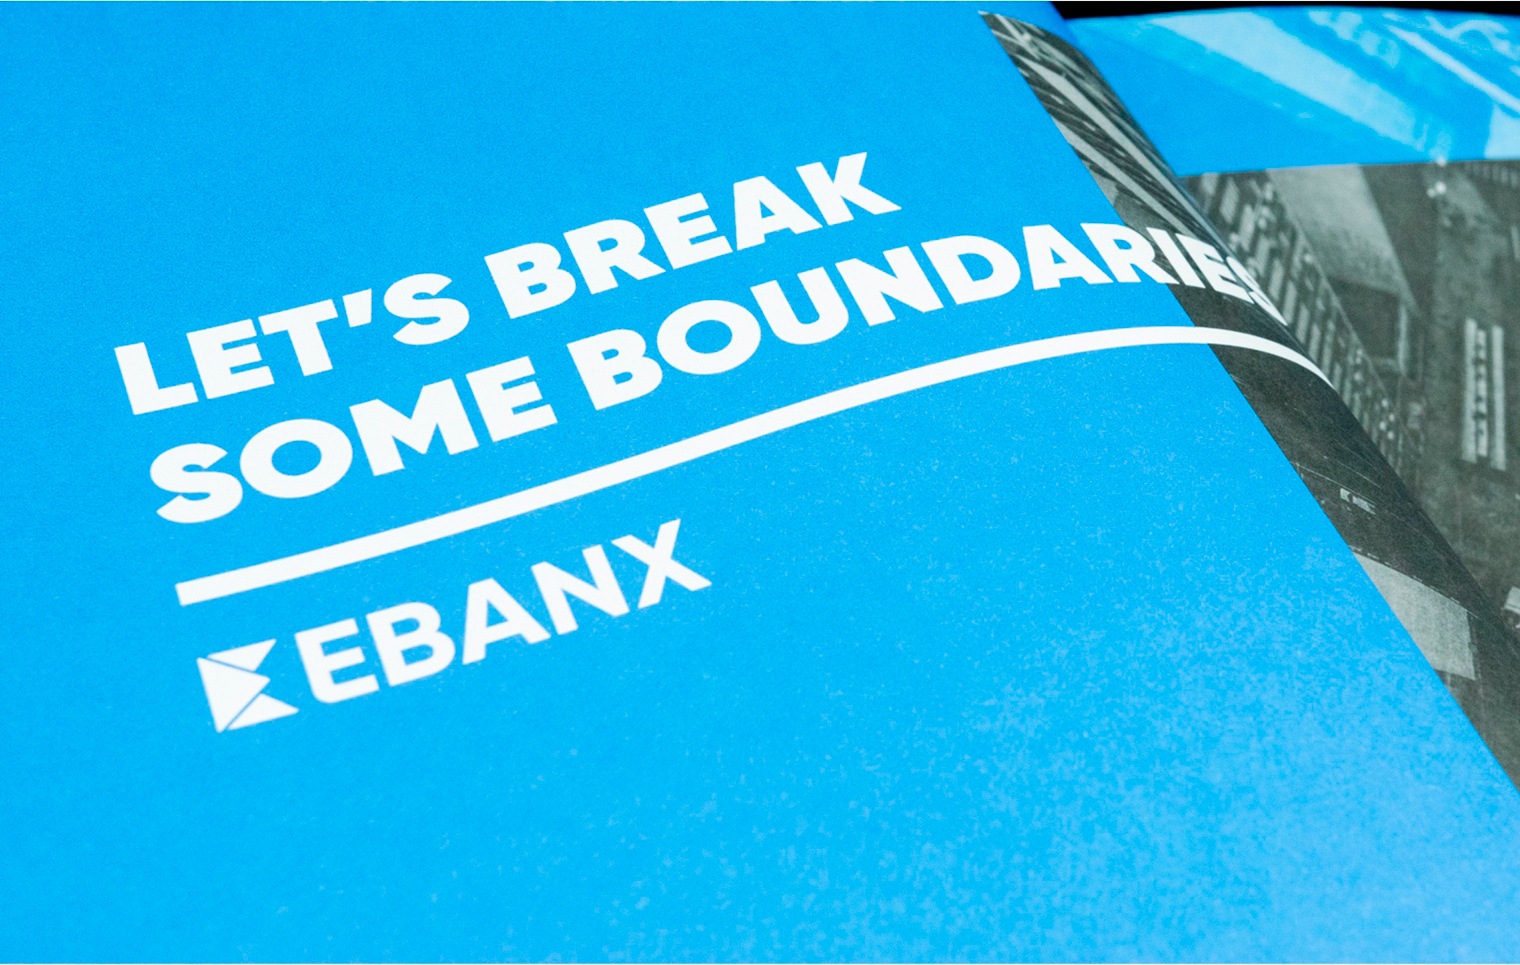 Let's break some boundaries | EBANX